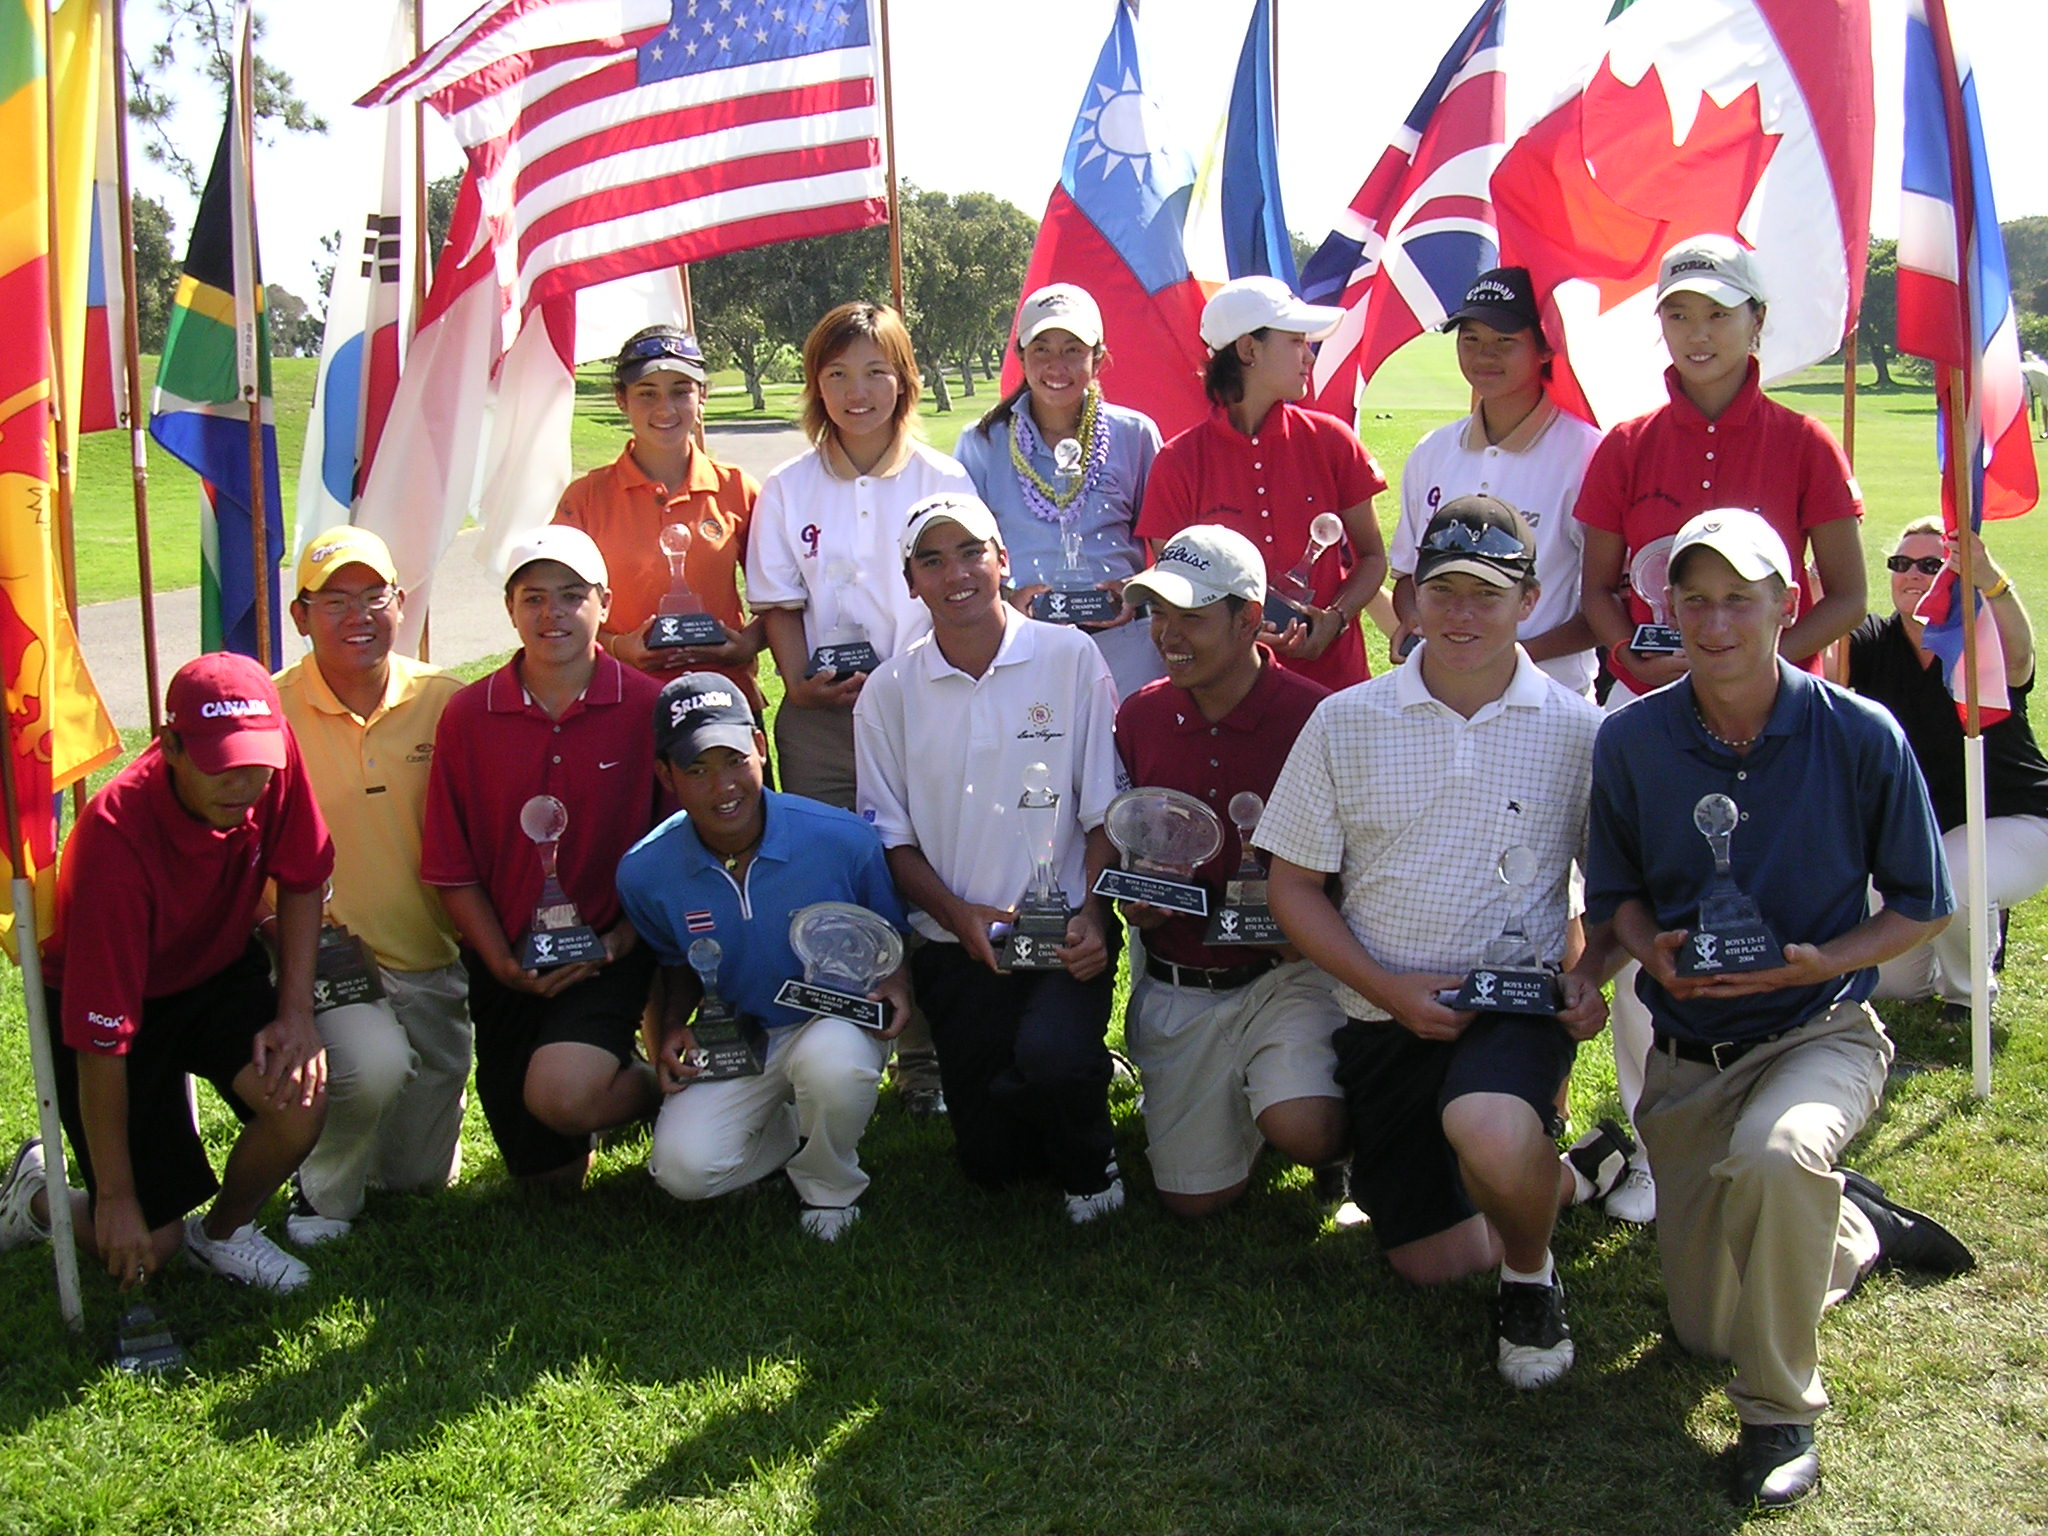 Callaway Junior World Trophy Winners